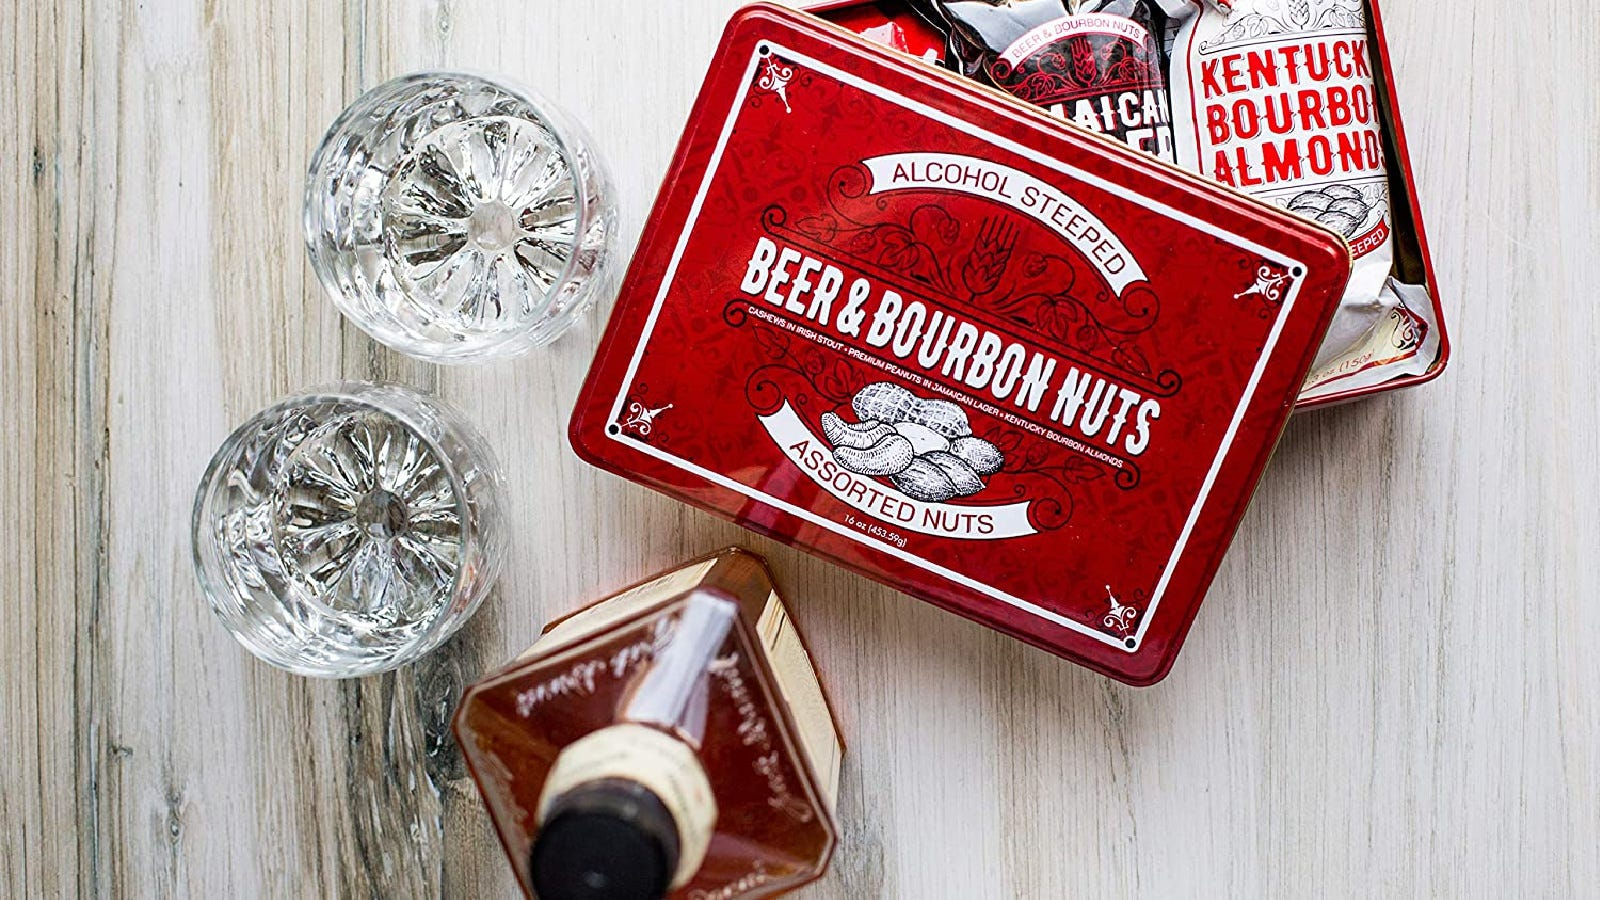 A tin box of beer & bourbon nuts, next to an aged bottle of whiskey and two glasses.